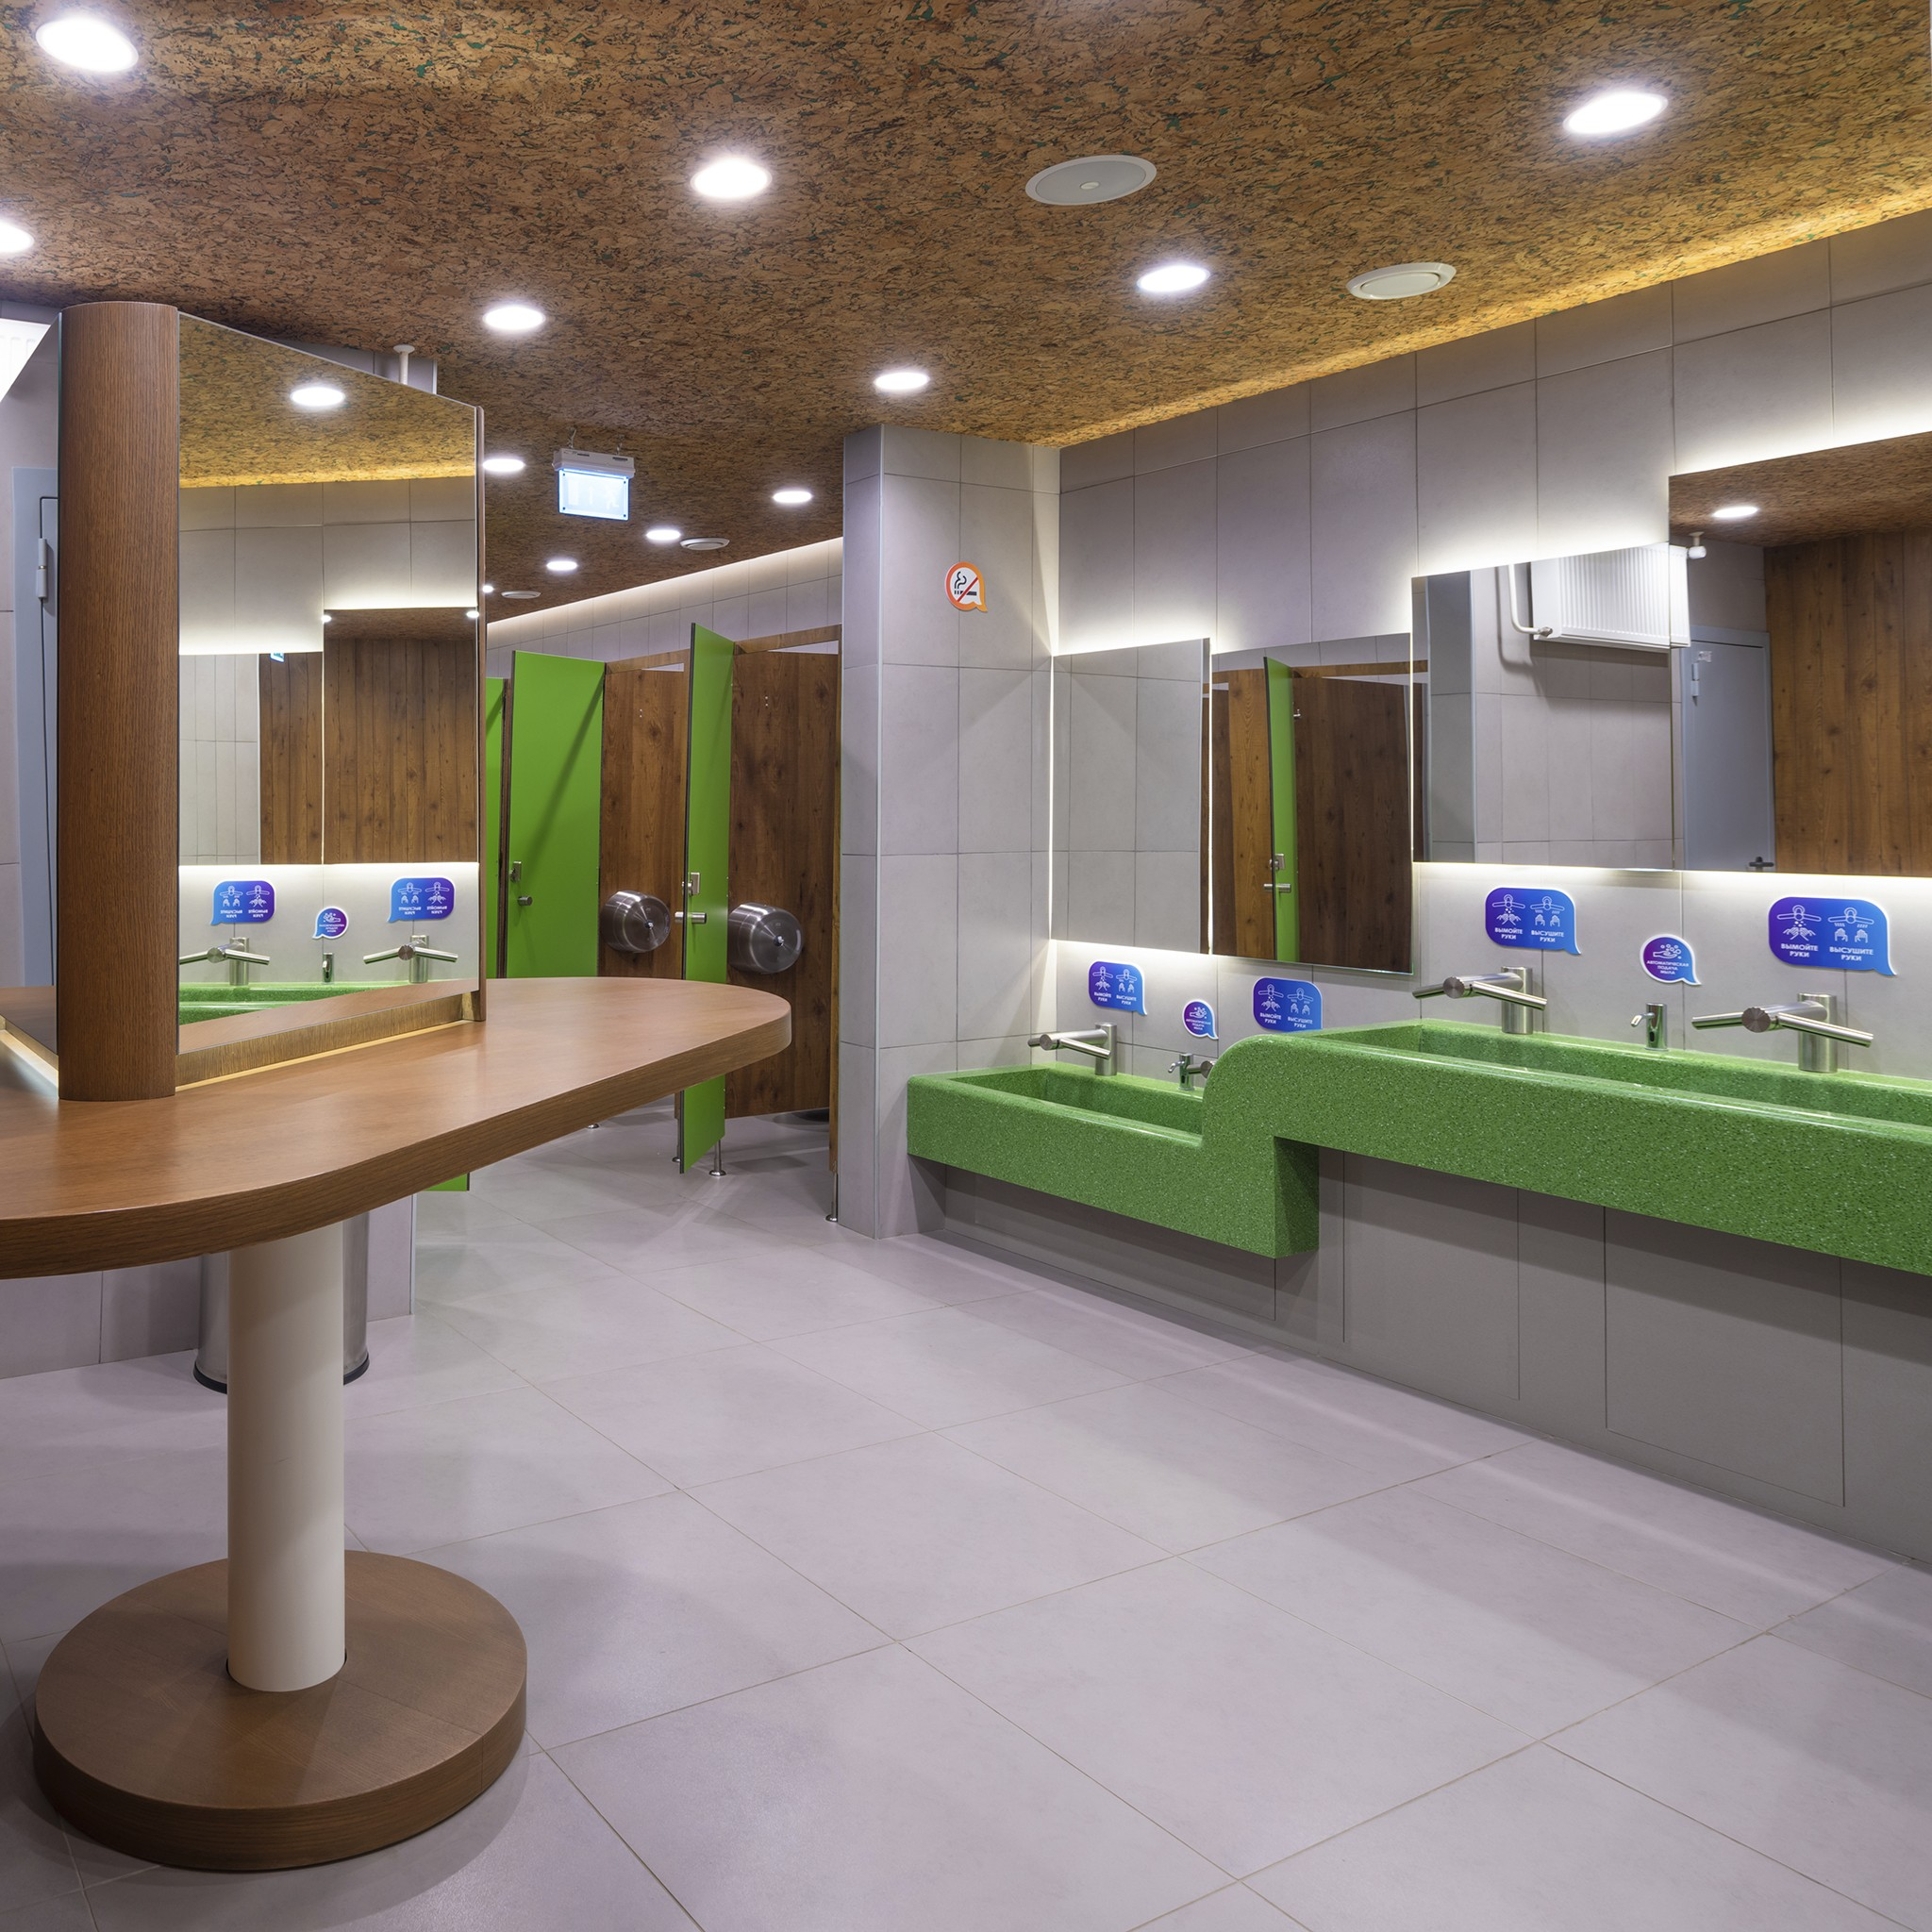 several toilets in a shopping mall